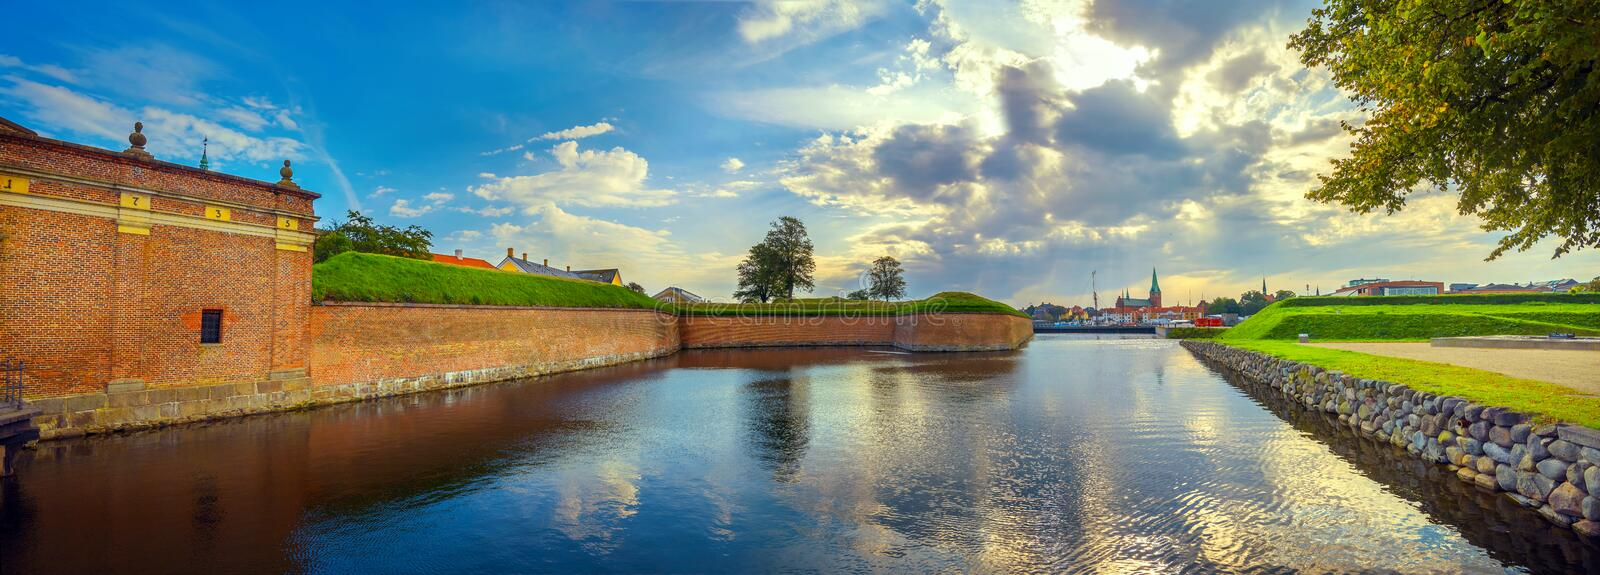 Fortress walls and moat with water in Kronborg castle at sunset. Helsingor, Denmark. Panoramic landscape with fortress walls, water moat of Kronborg castle and royalty free stock photo